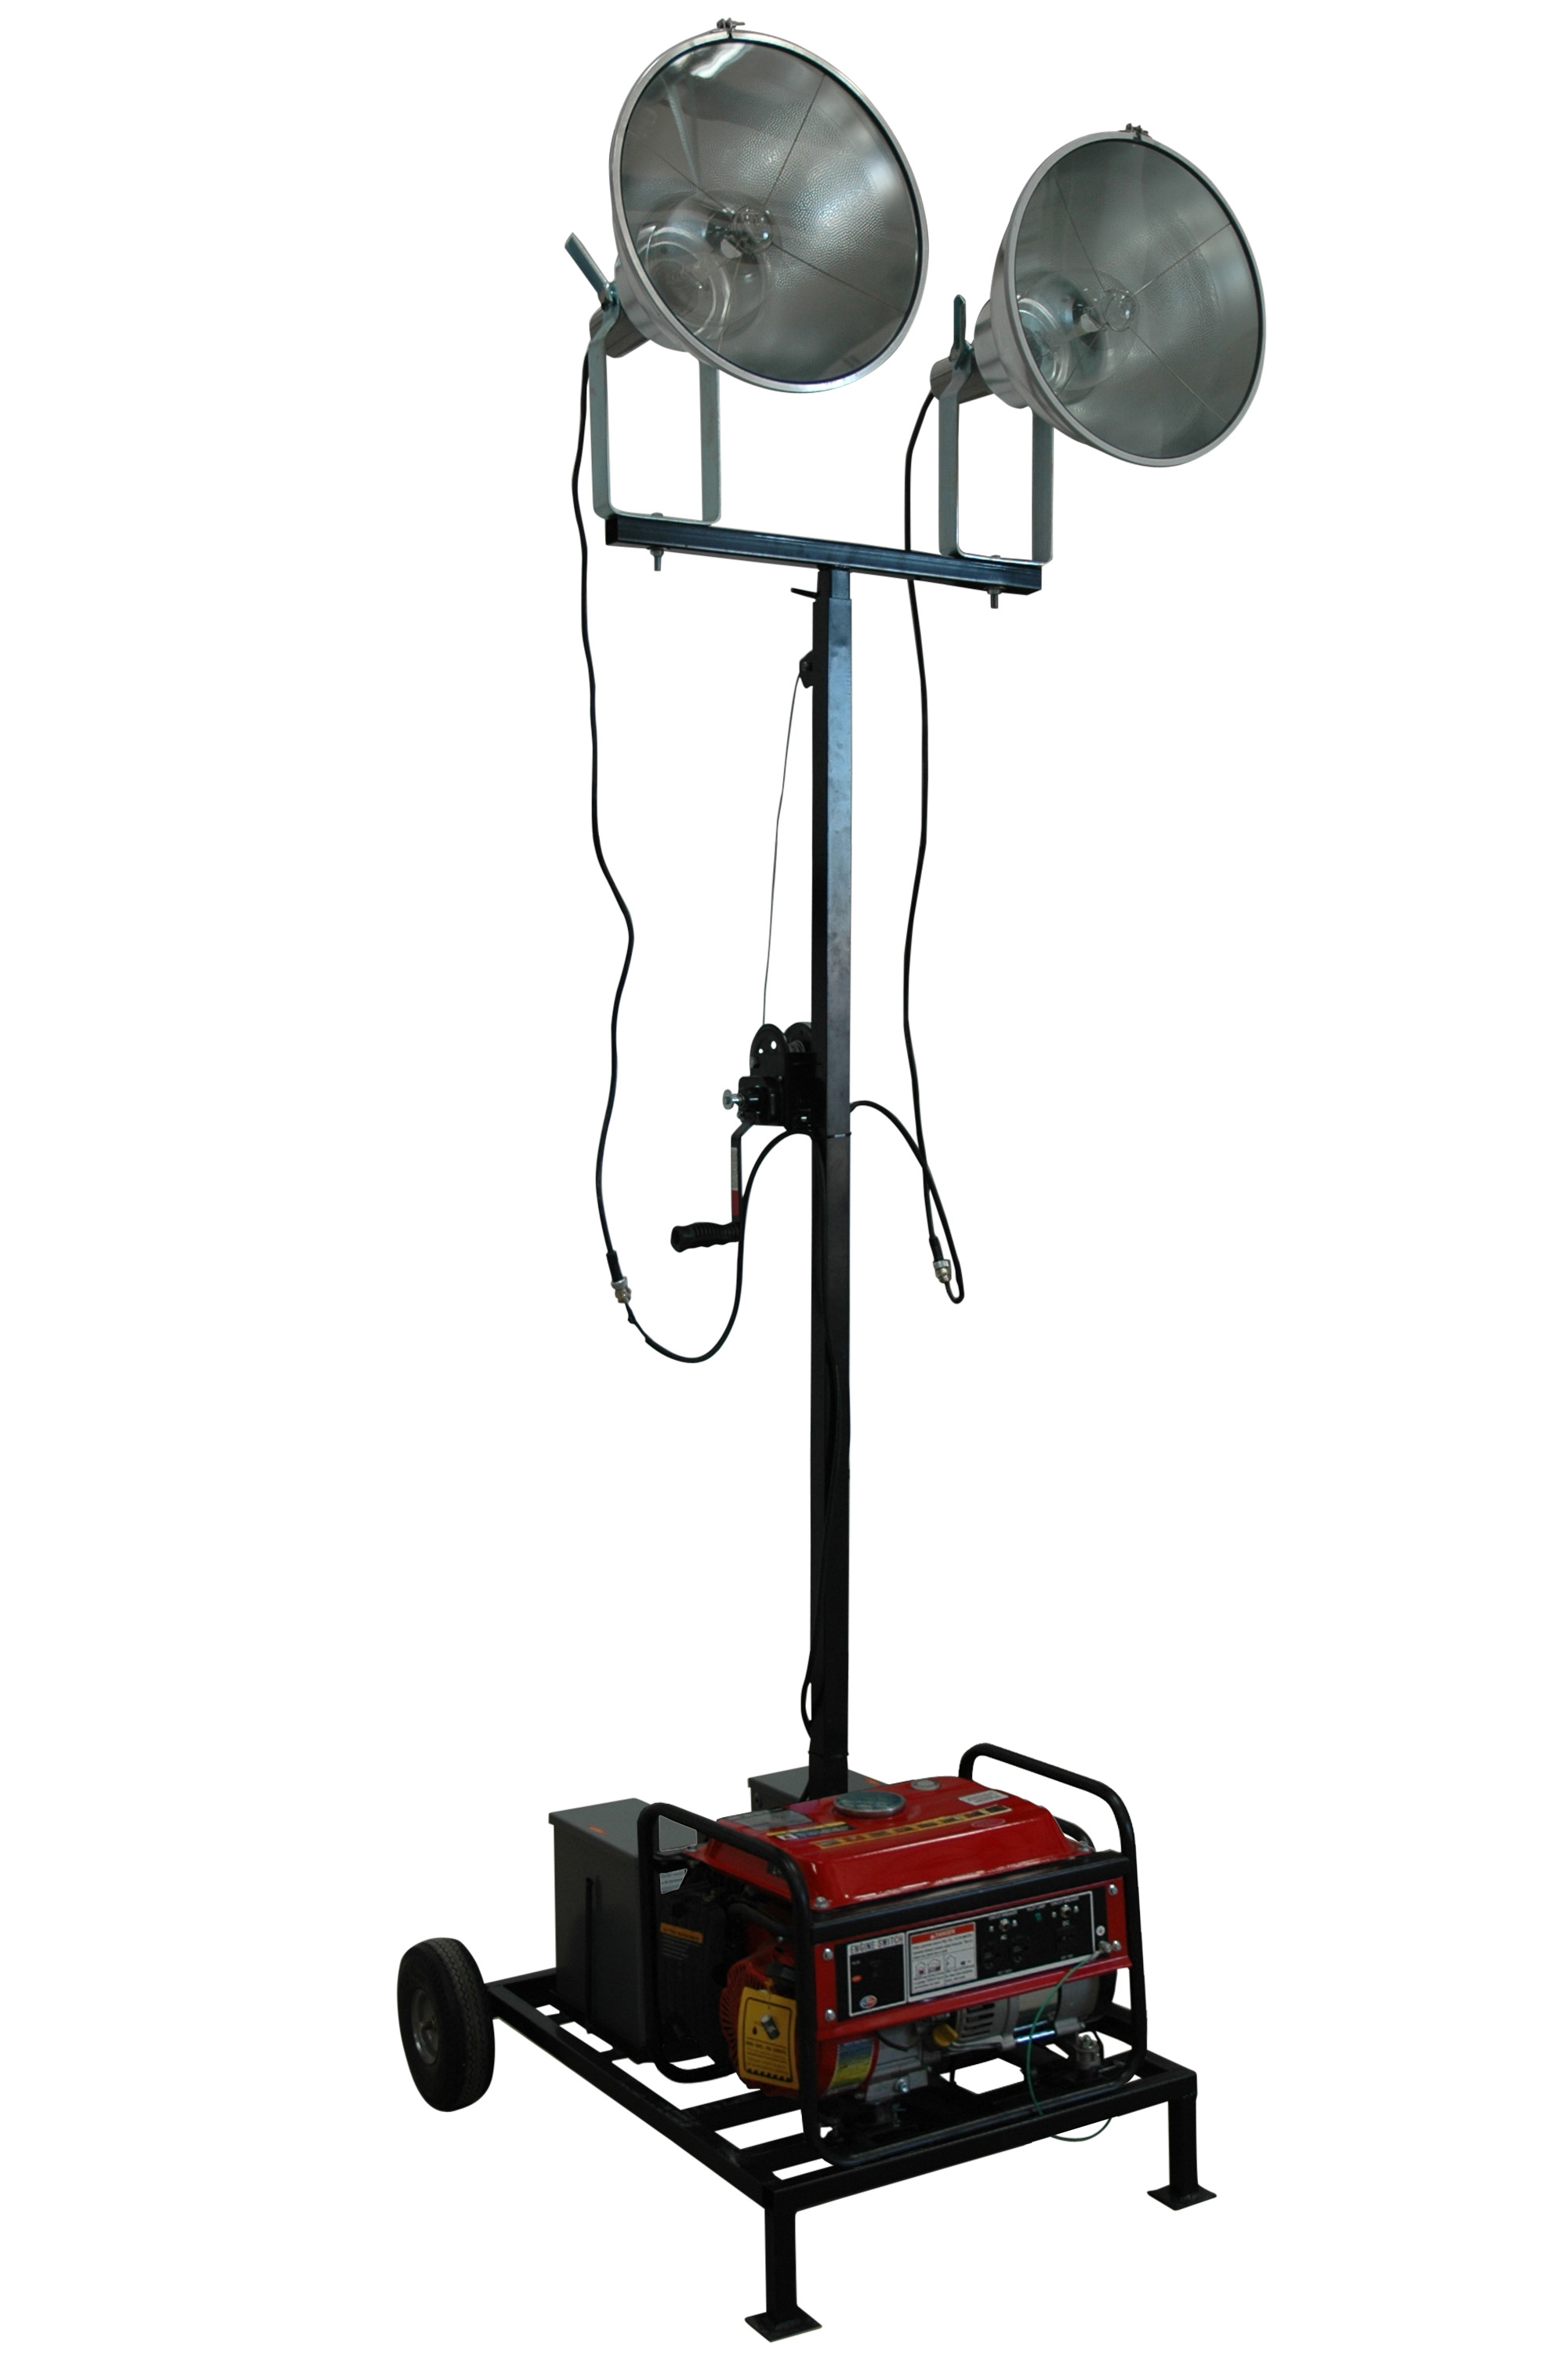 Larson Electronics Announces Release Of Fully Portable Generator Powered Light Tower